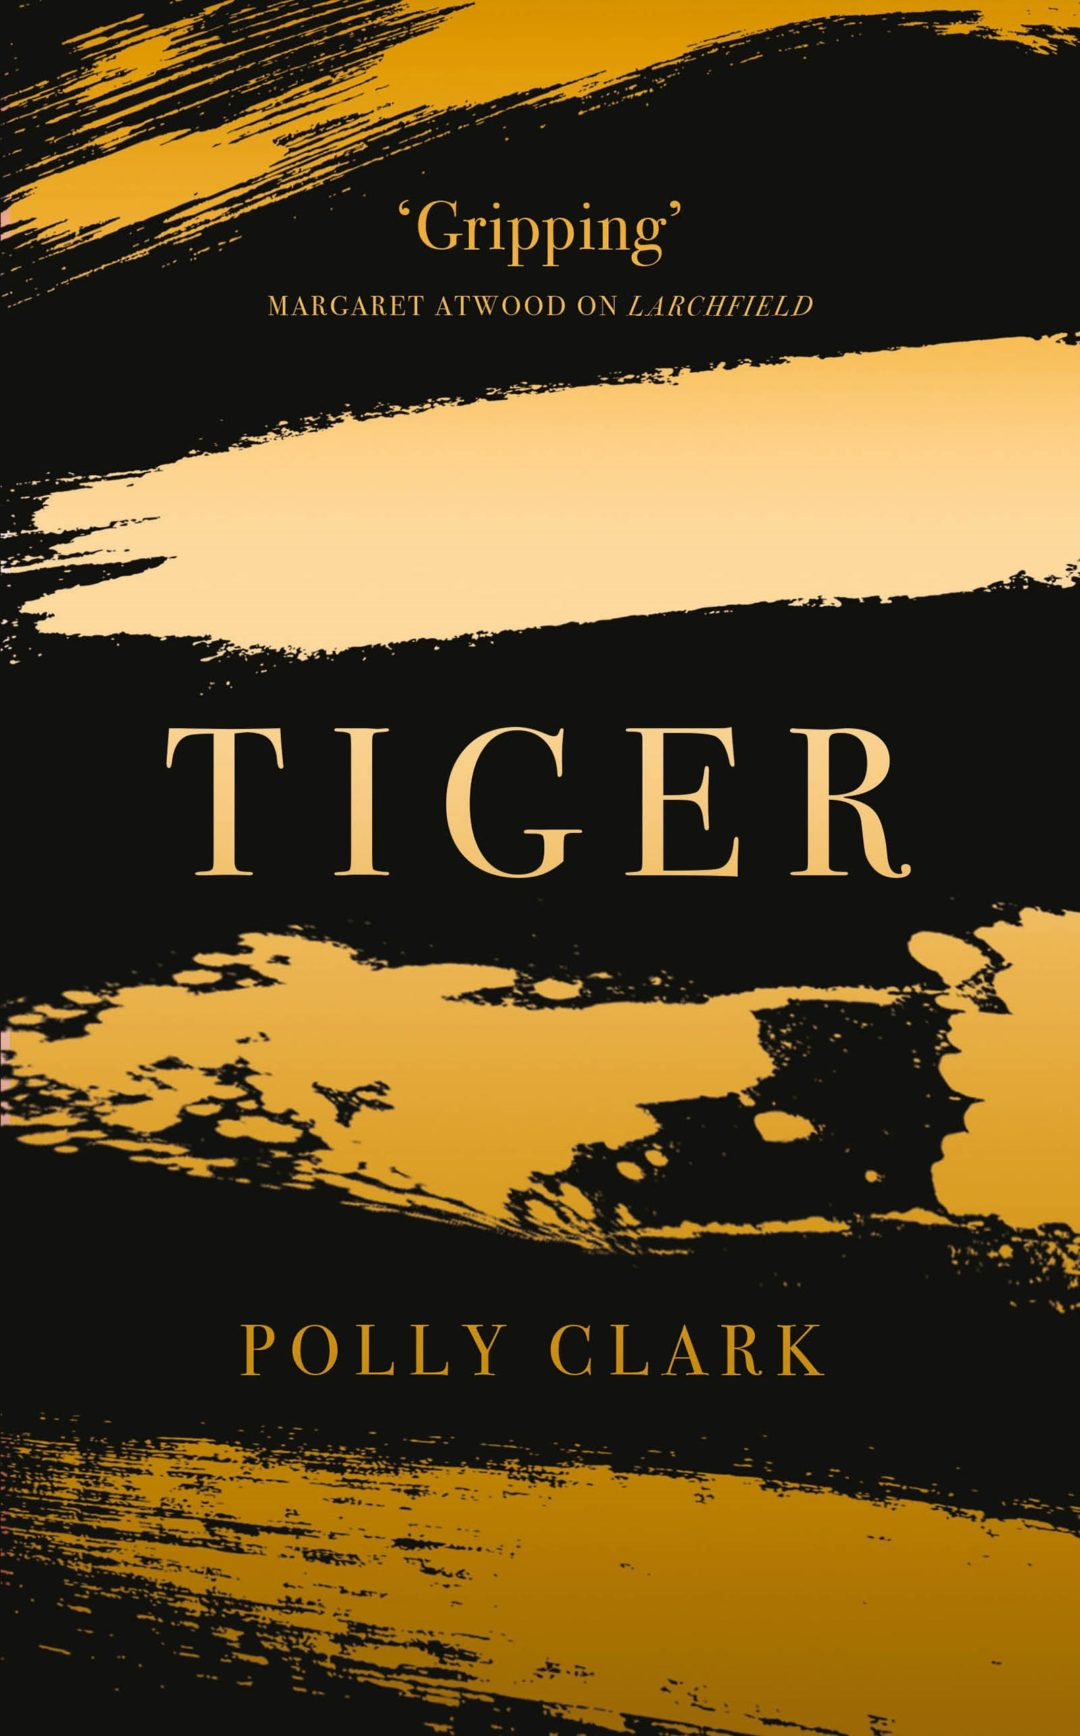 'Tiger' by Polly Clark – Book Launch